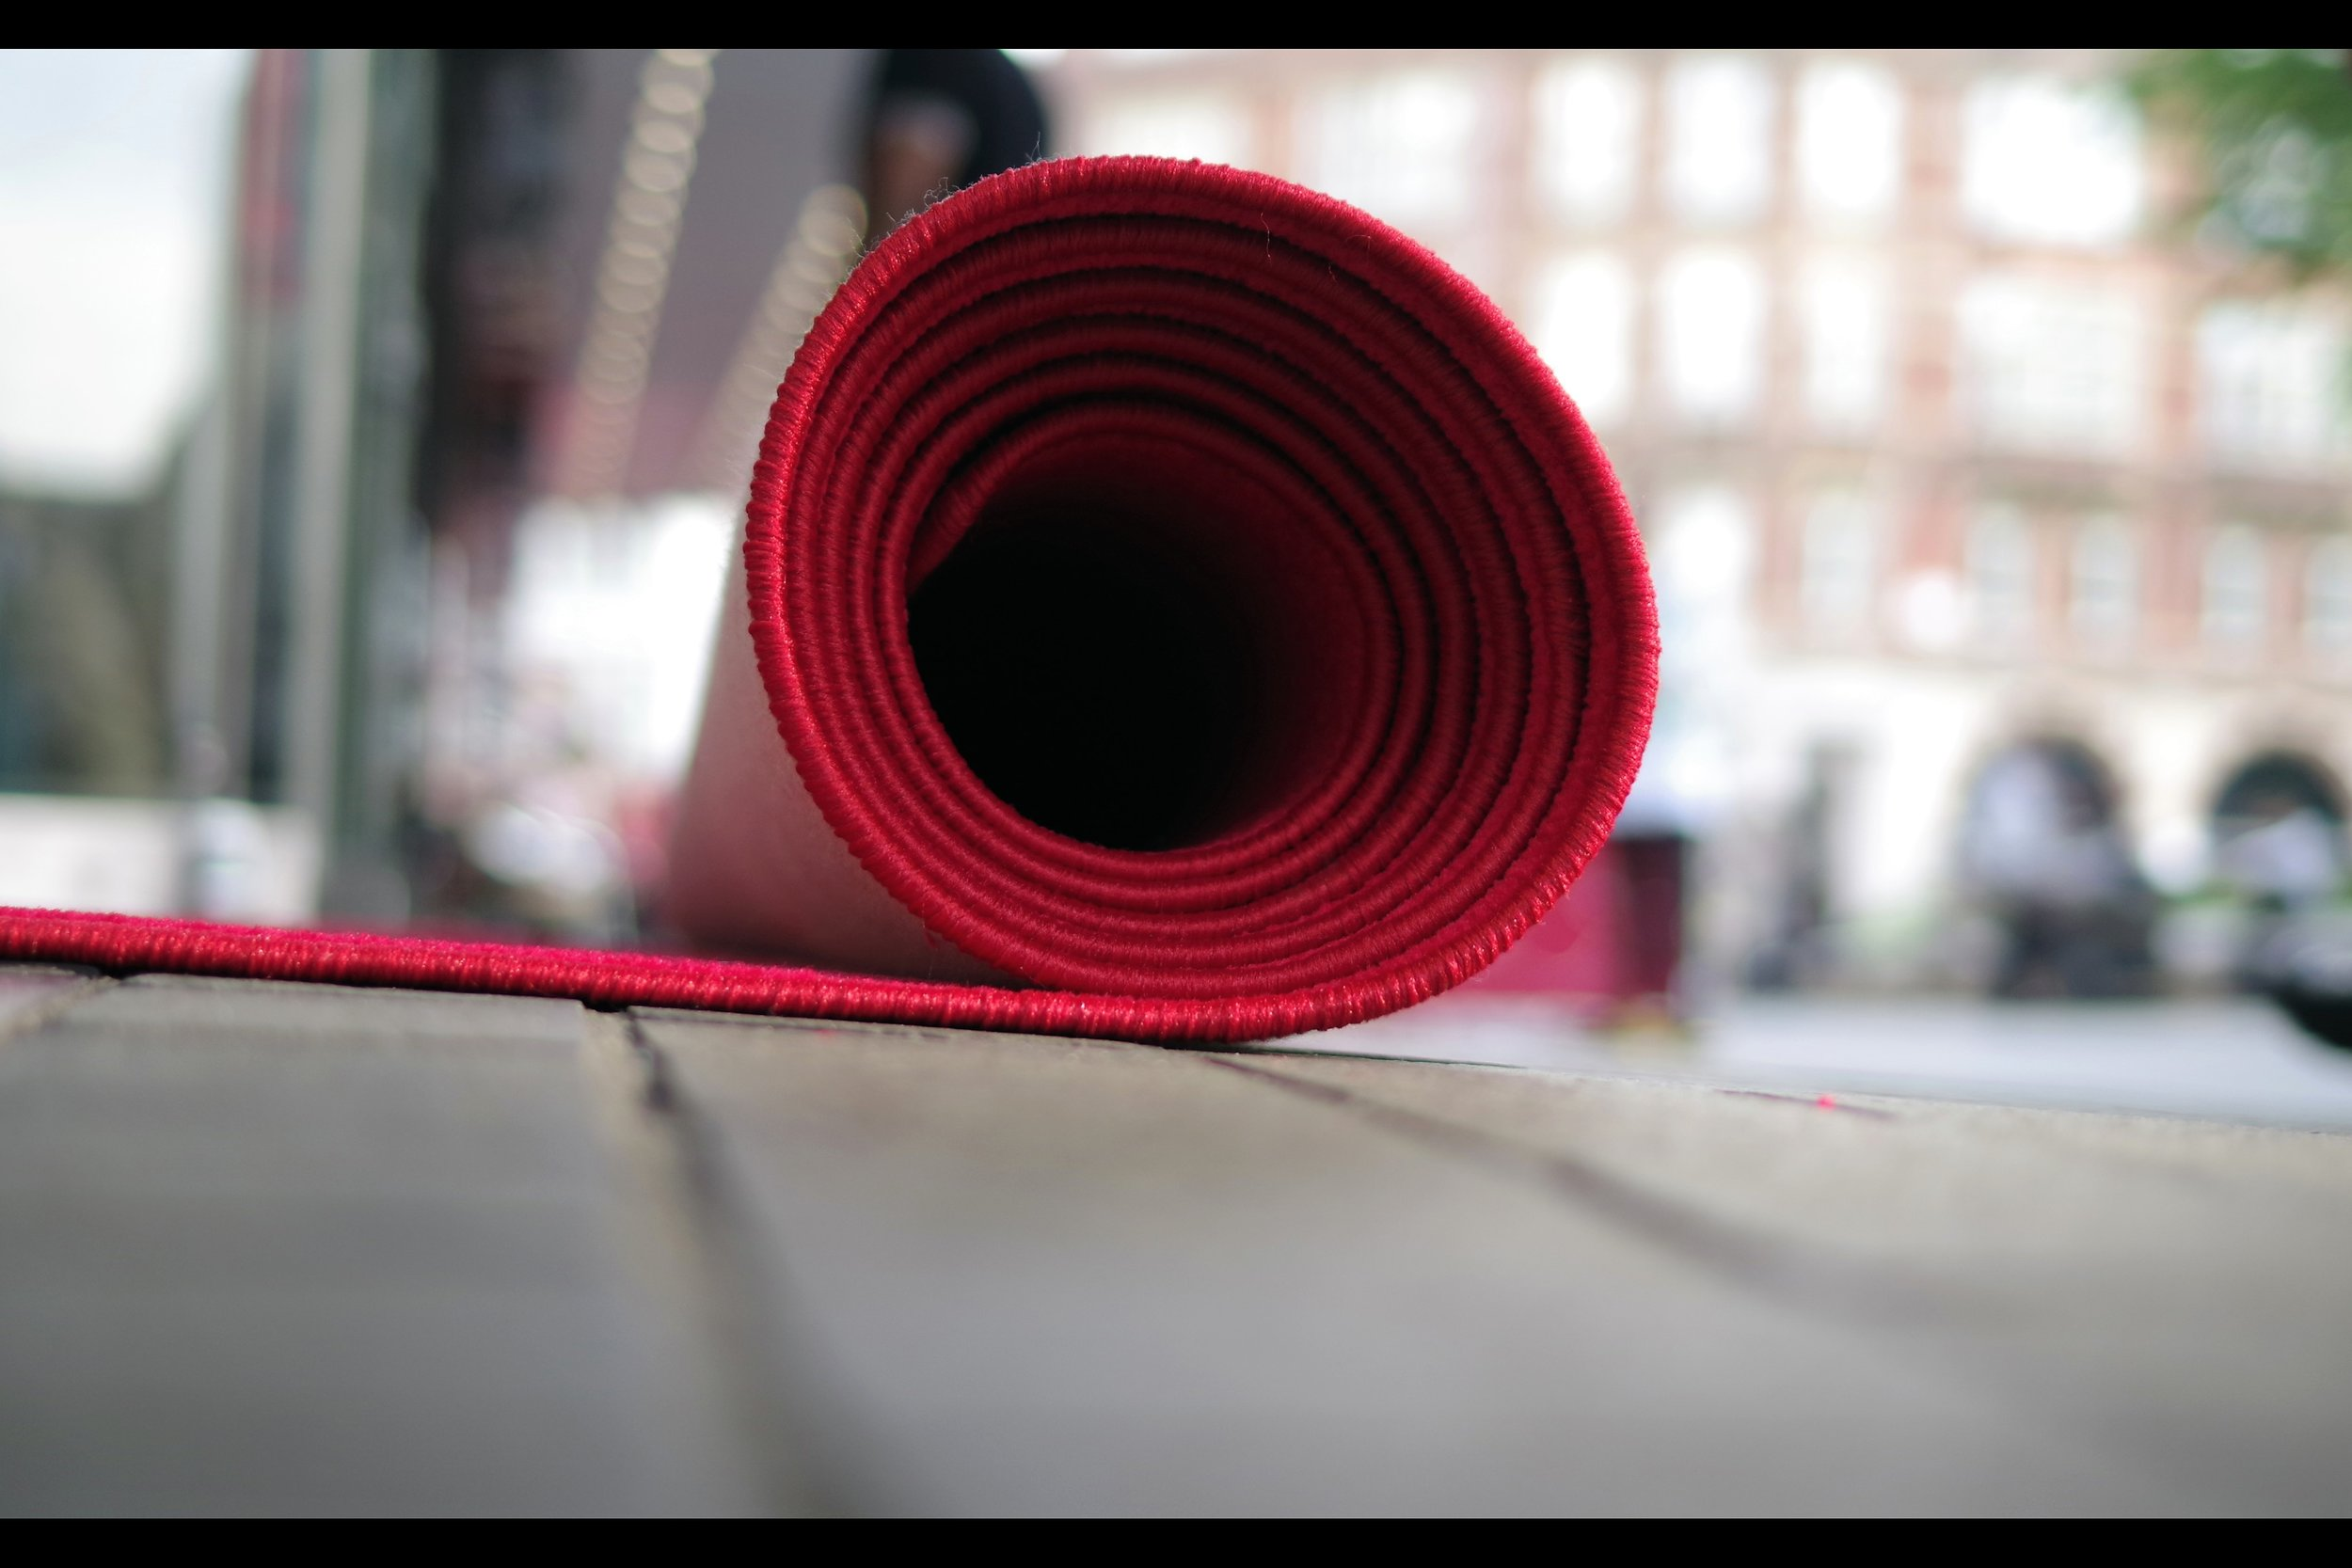 Rolled up red carpet. (Not to scale).